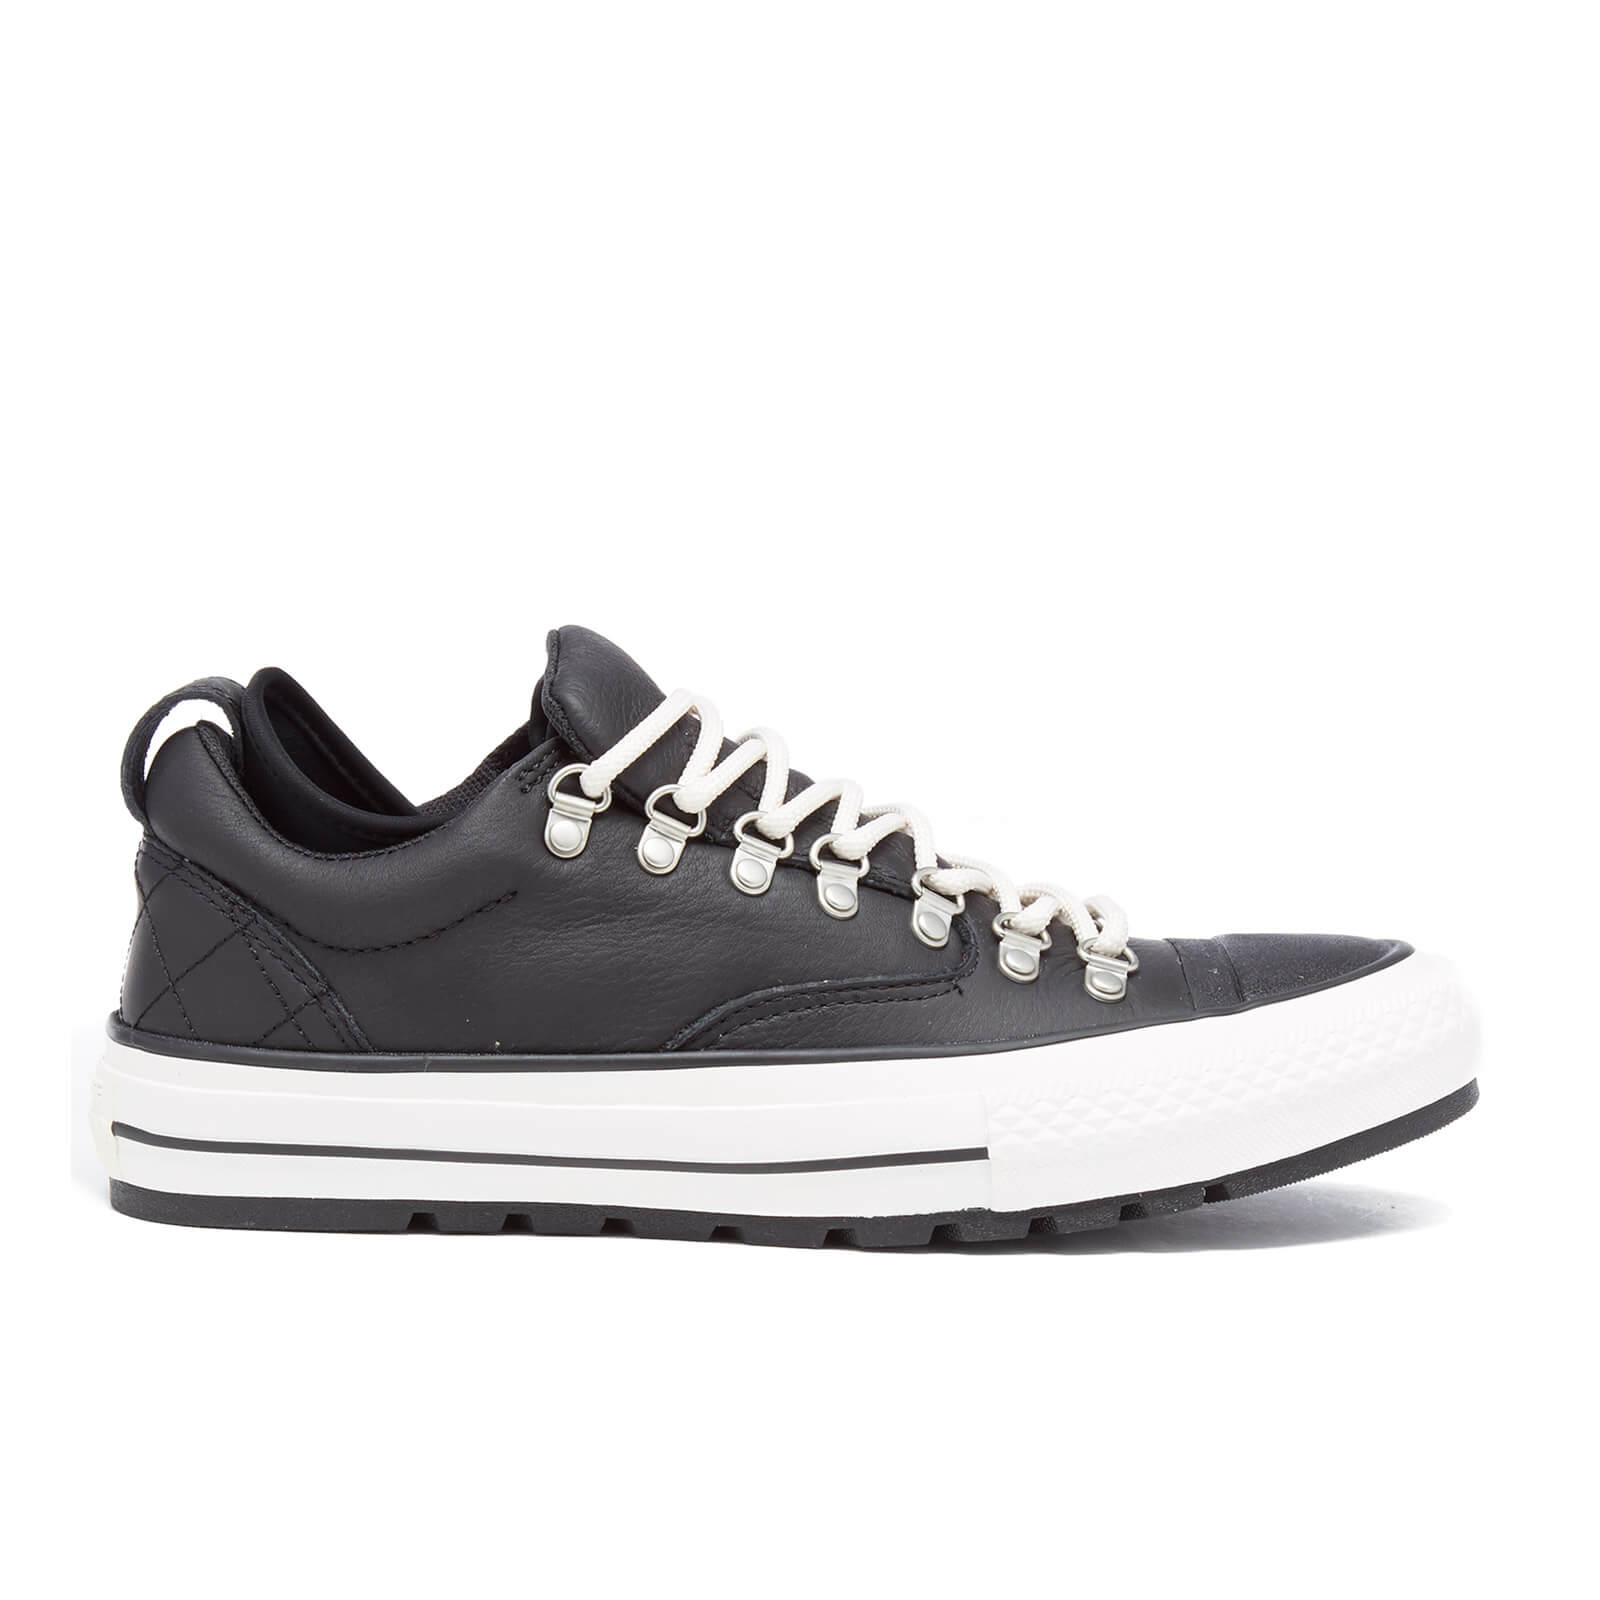 5bcb4380507a Converse Men s Chuck Taylor All Star Descent Hiker Trainers - Black ...